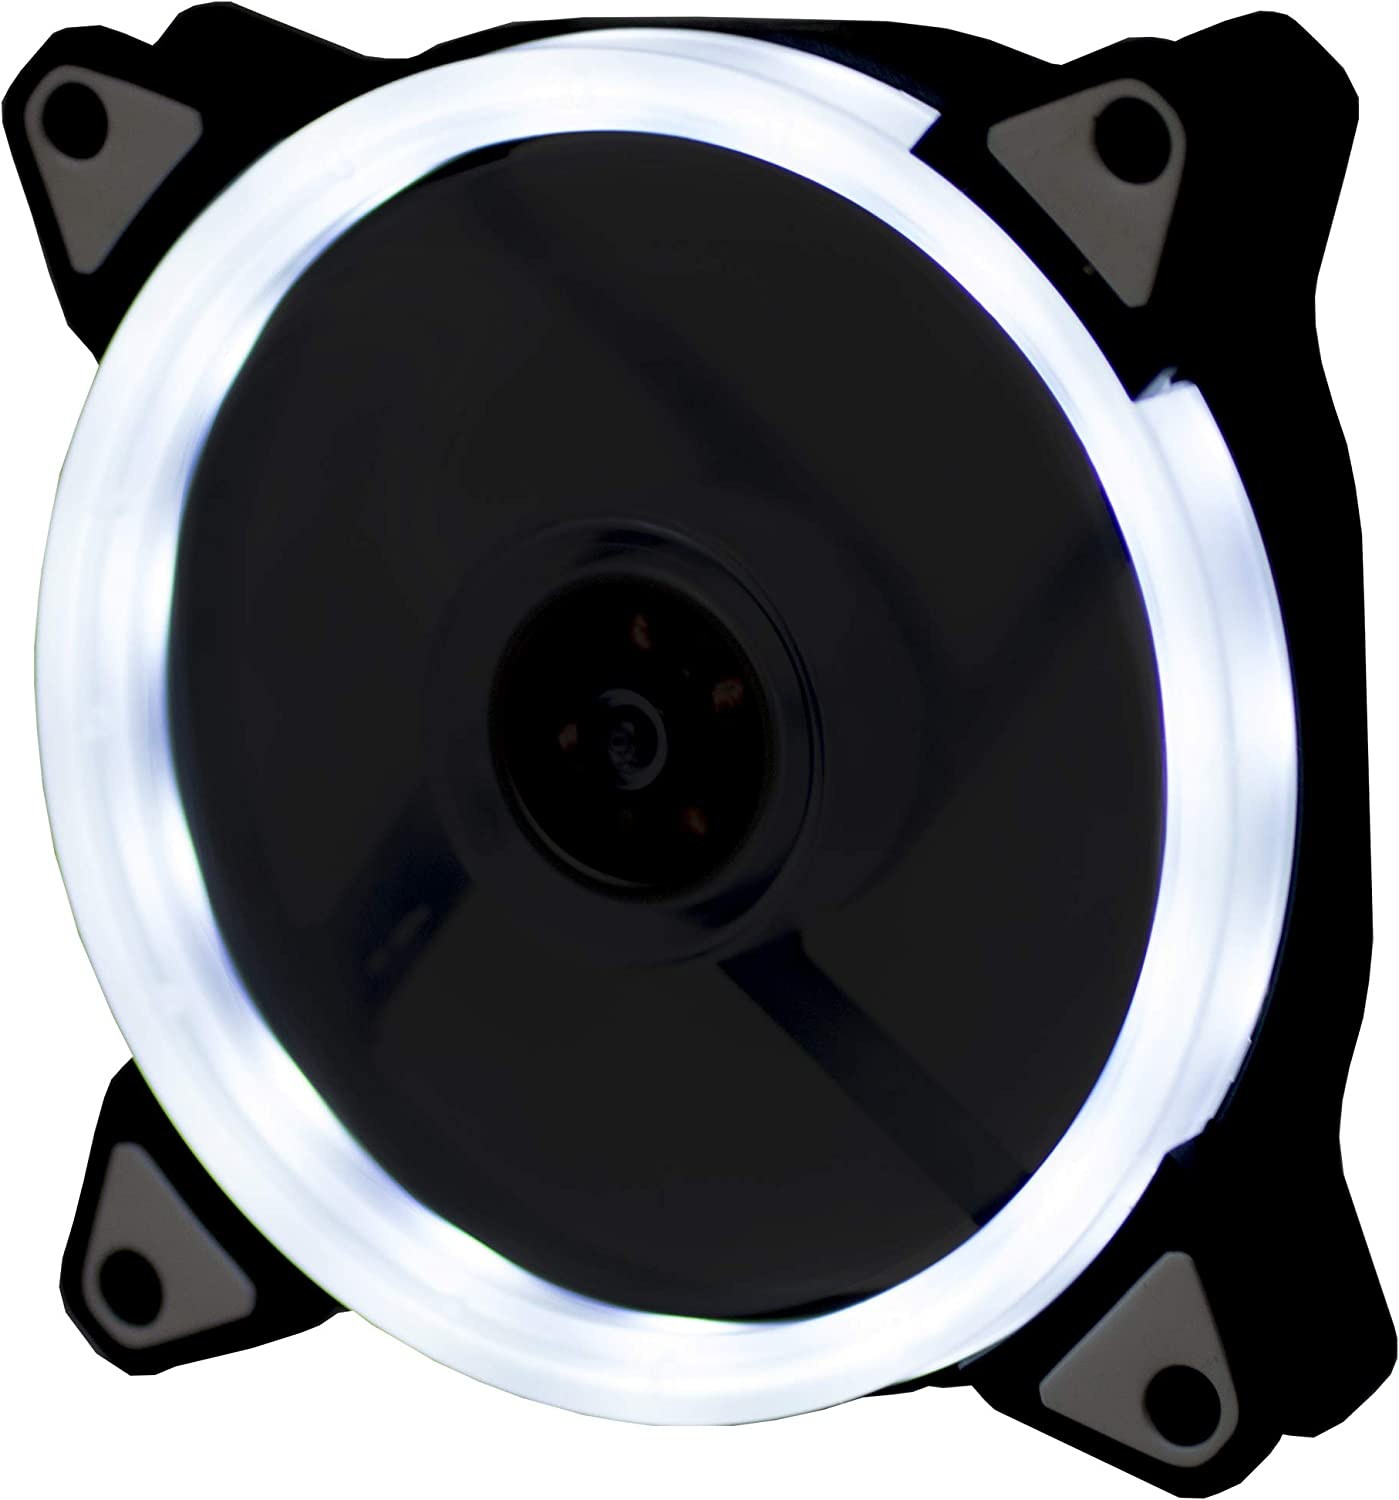 Lilware BoostPro 120mm Air Flow Balance Single Color LED Quiet High Performance Case Fan White